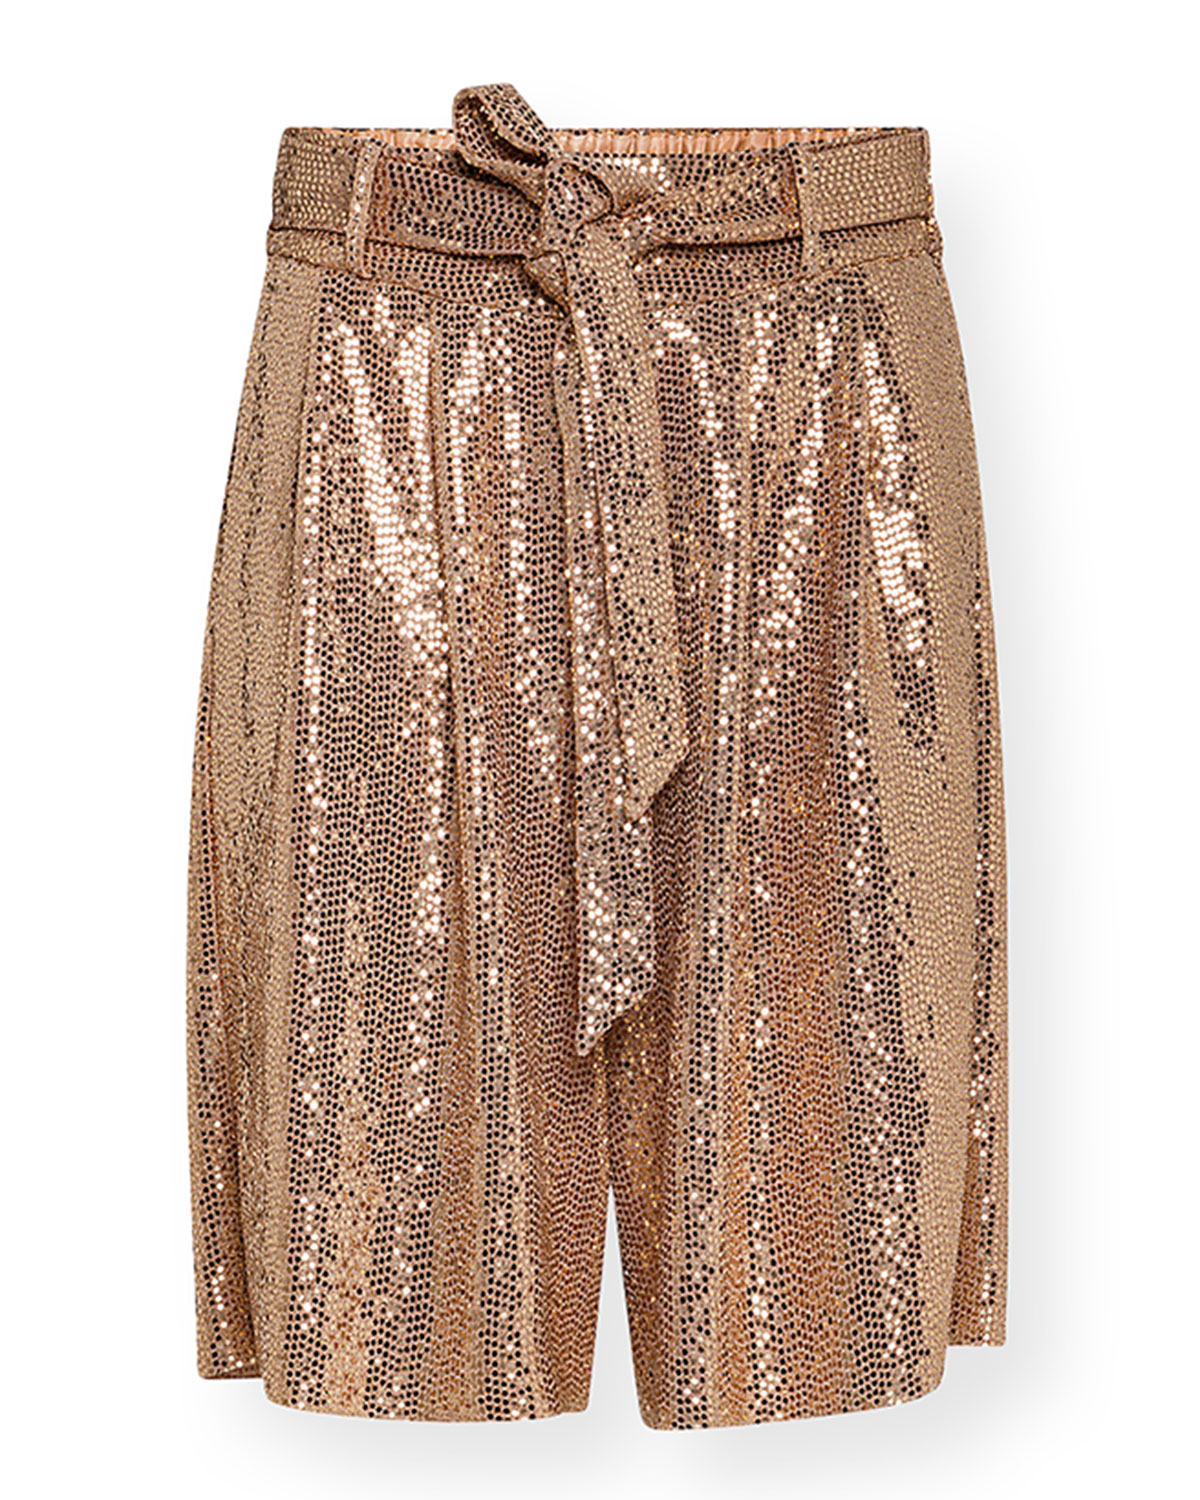 Sequined Jersey Bermuda Shorts